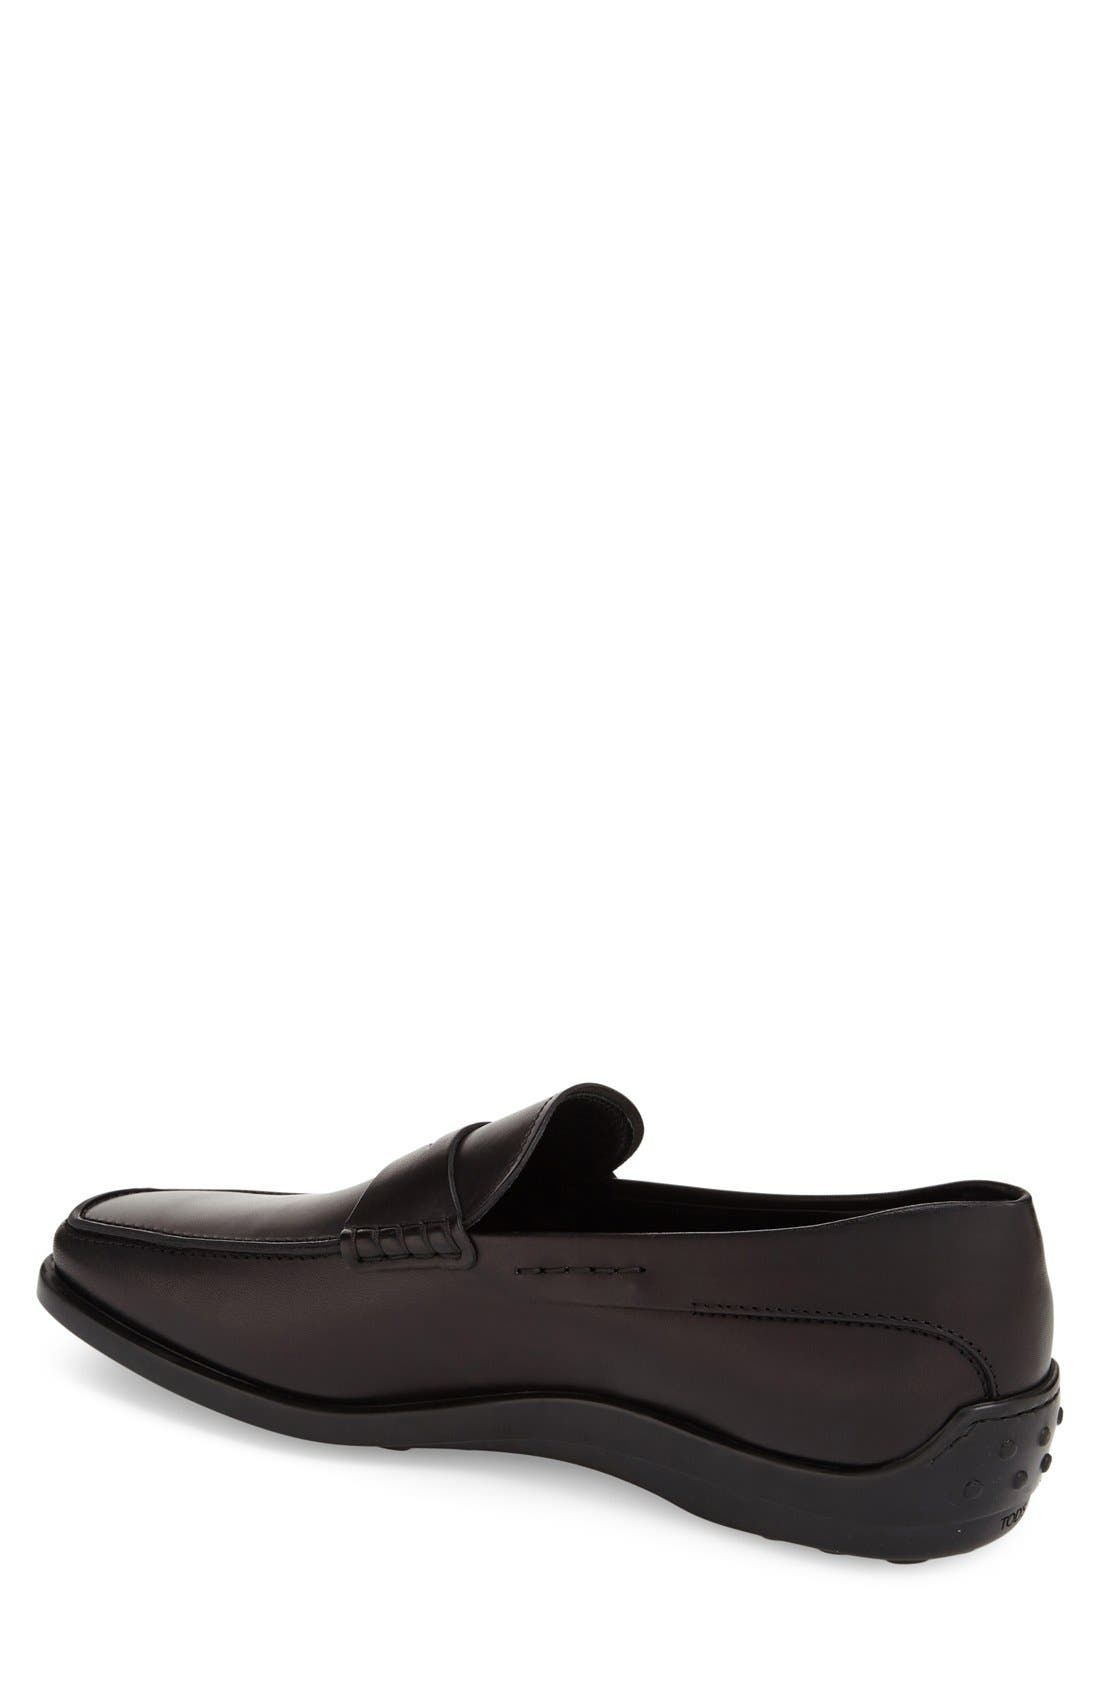 Alternate Image 2  - Tod's 'Quinn' Penny Loafer